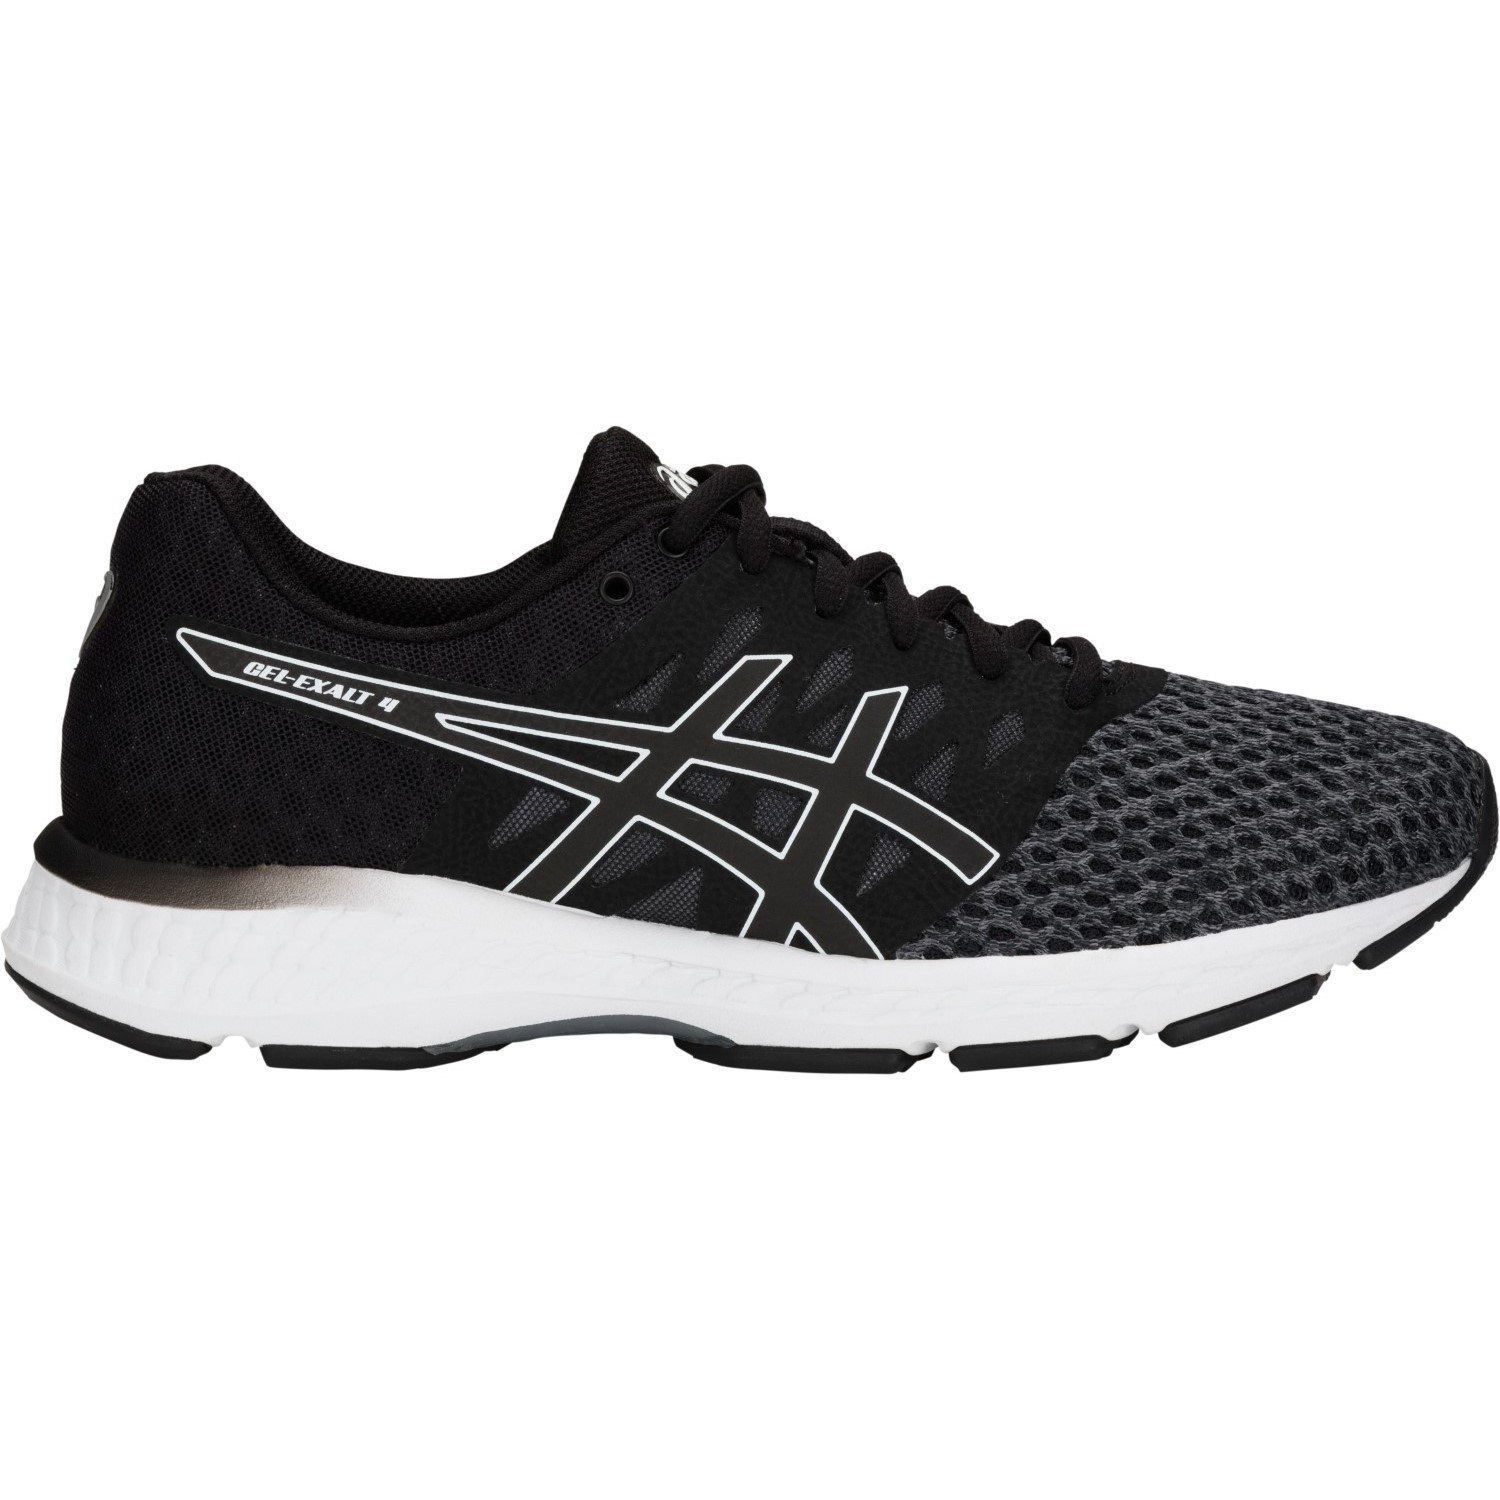 fine craftsmanship new concept pick up Asics Gel Exalt 4 - Womens Running Shoes